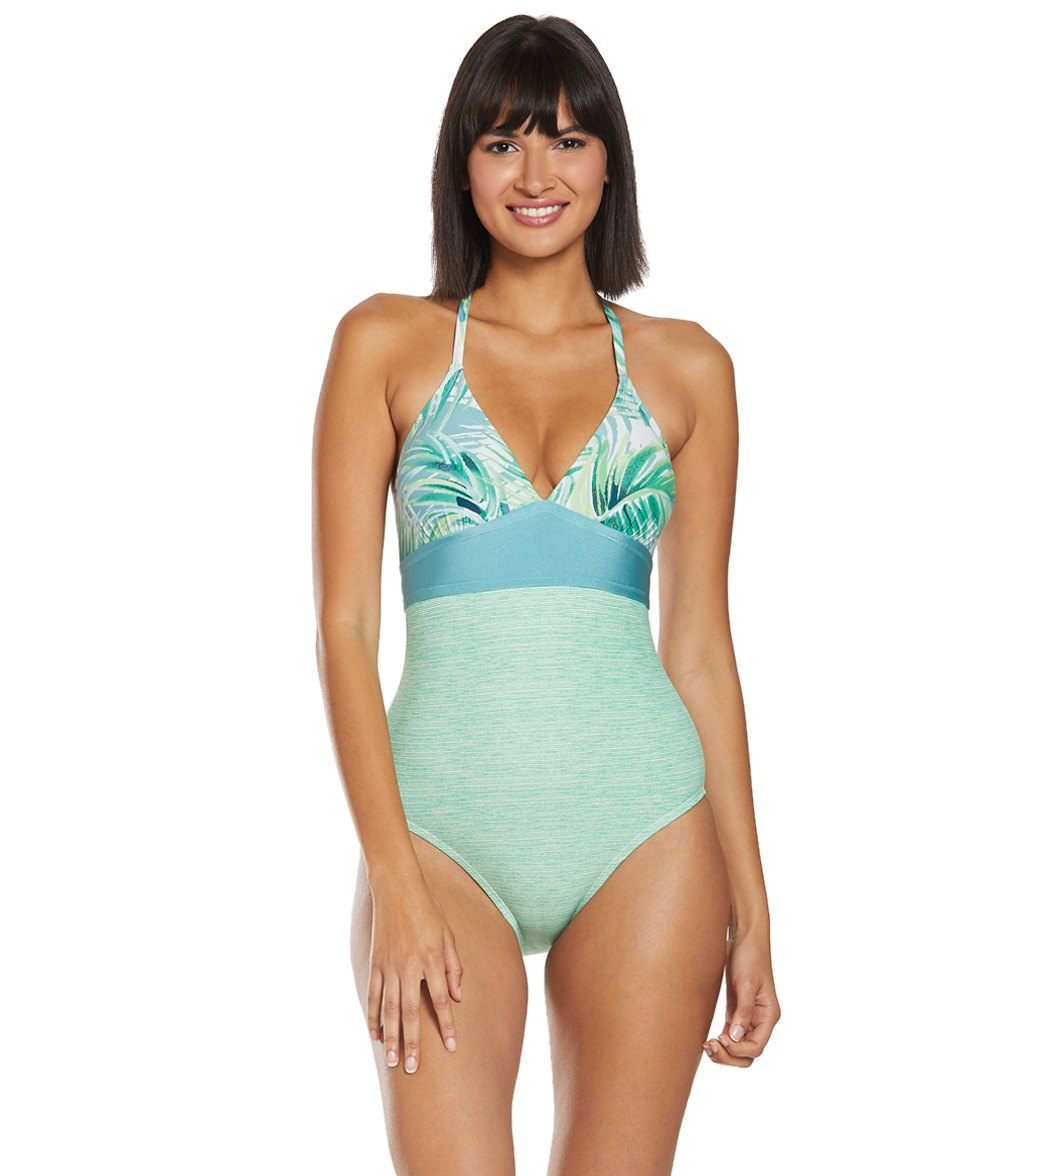 08b2f1e0e4829 Carve Designs Dahlia One Piece Swimsuit at SwimOutlet.com - Free ...